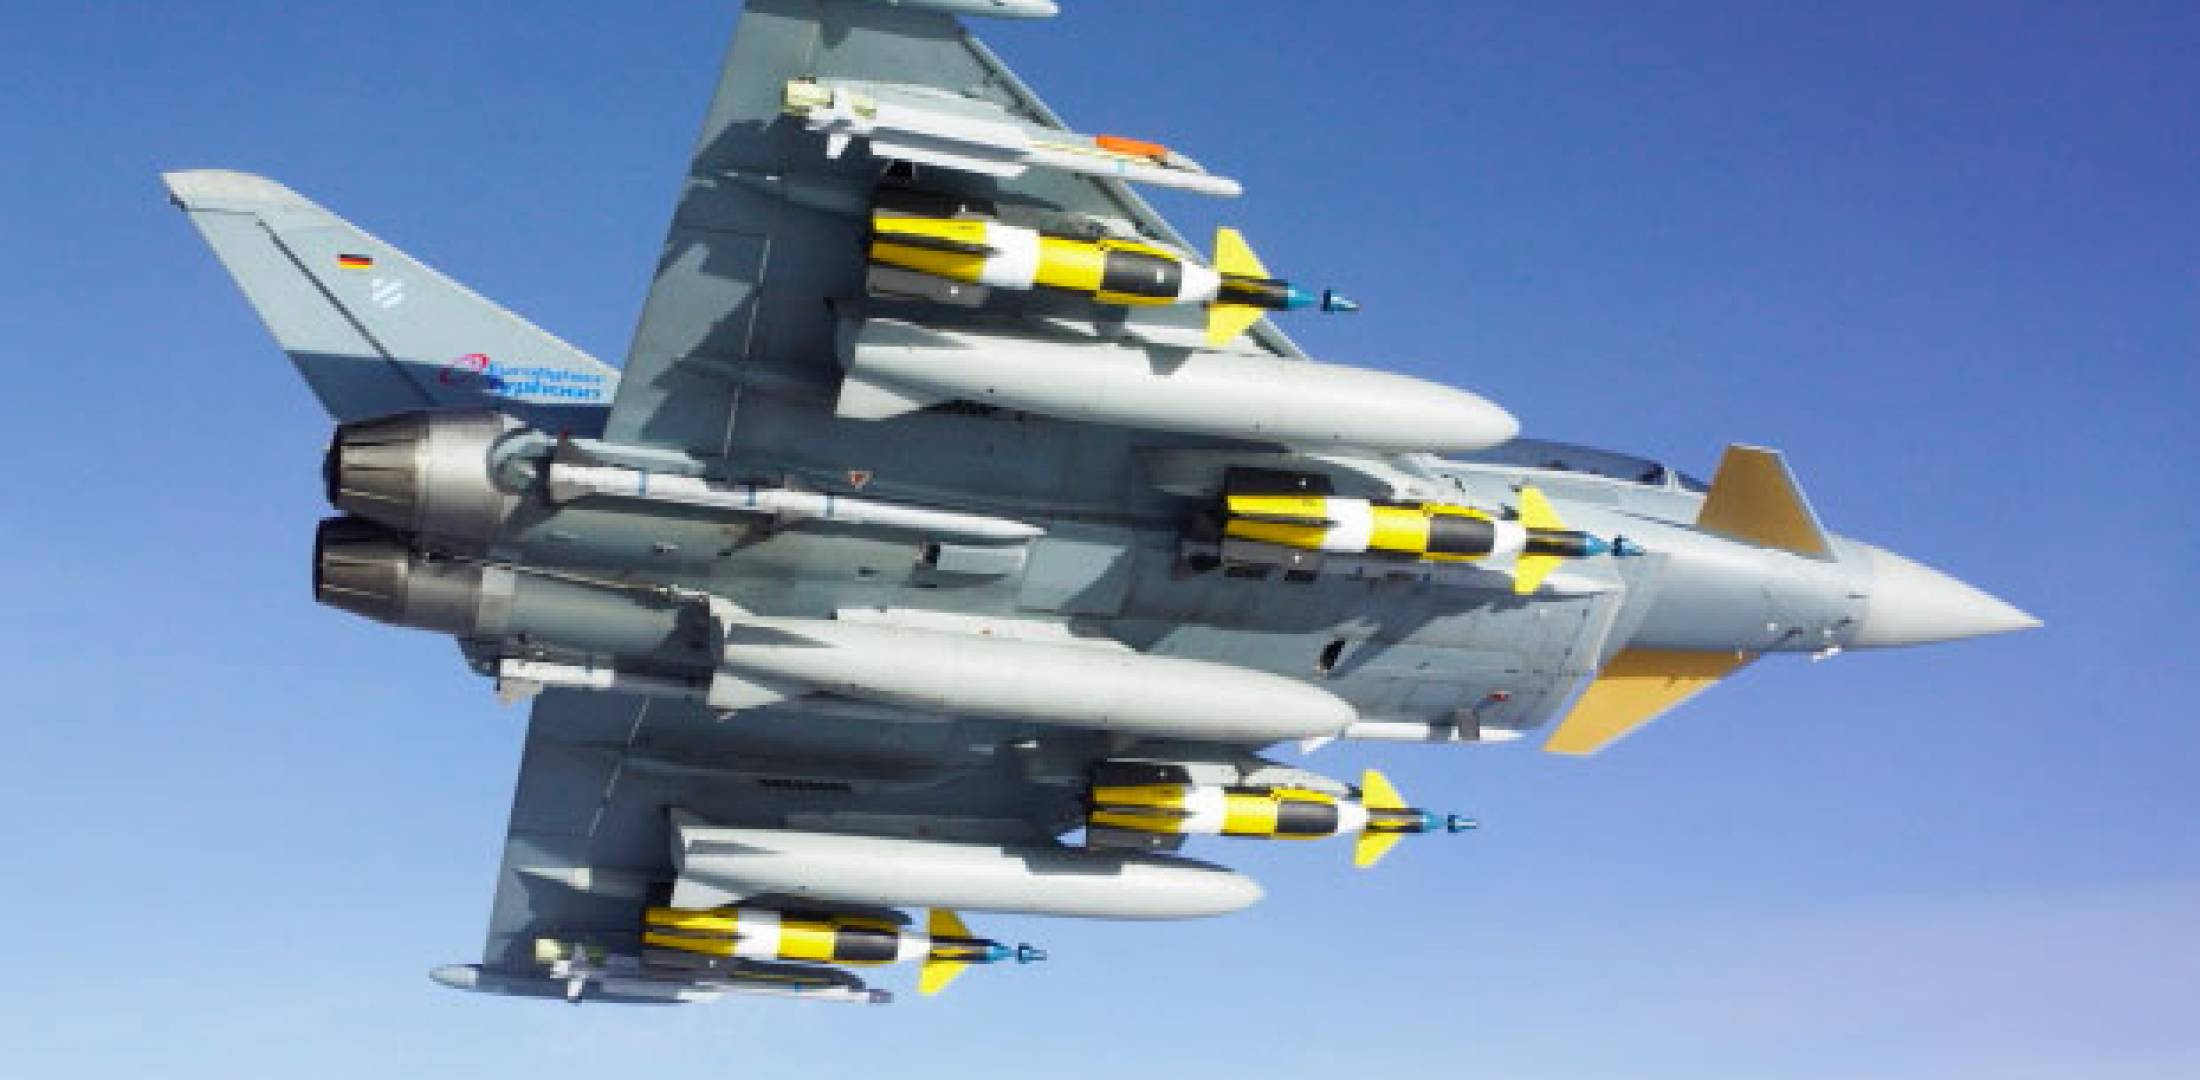 Typhoon with weapons